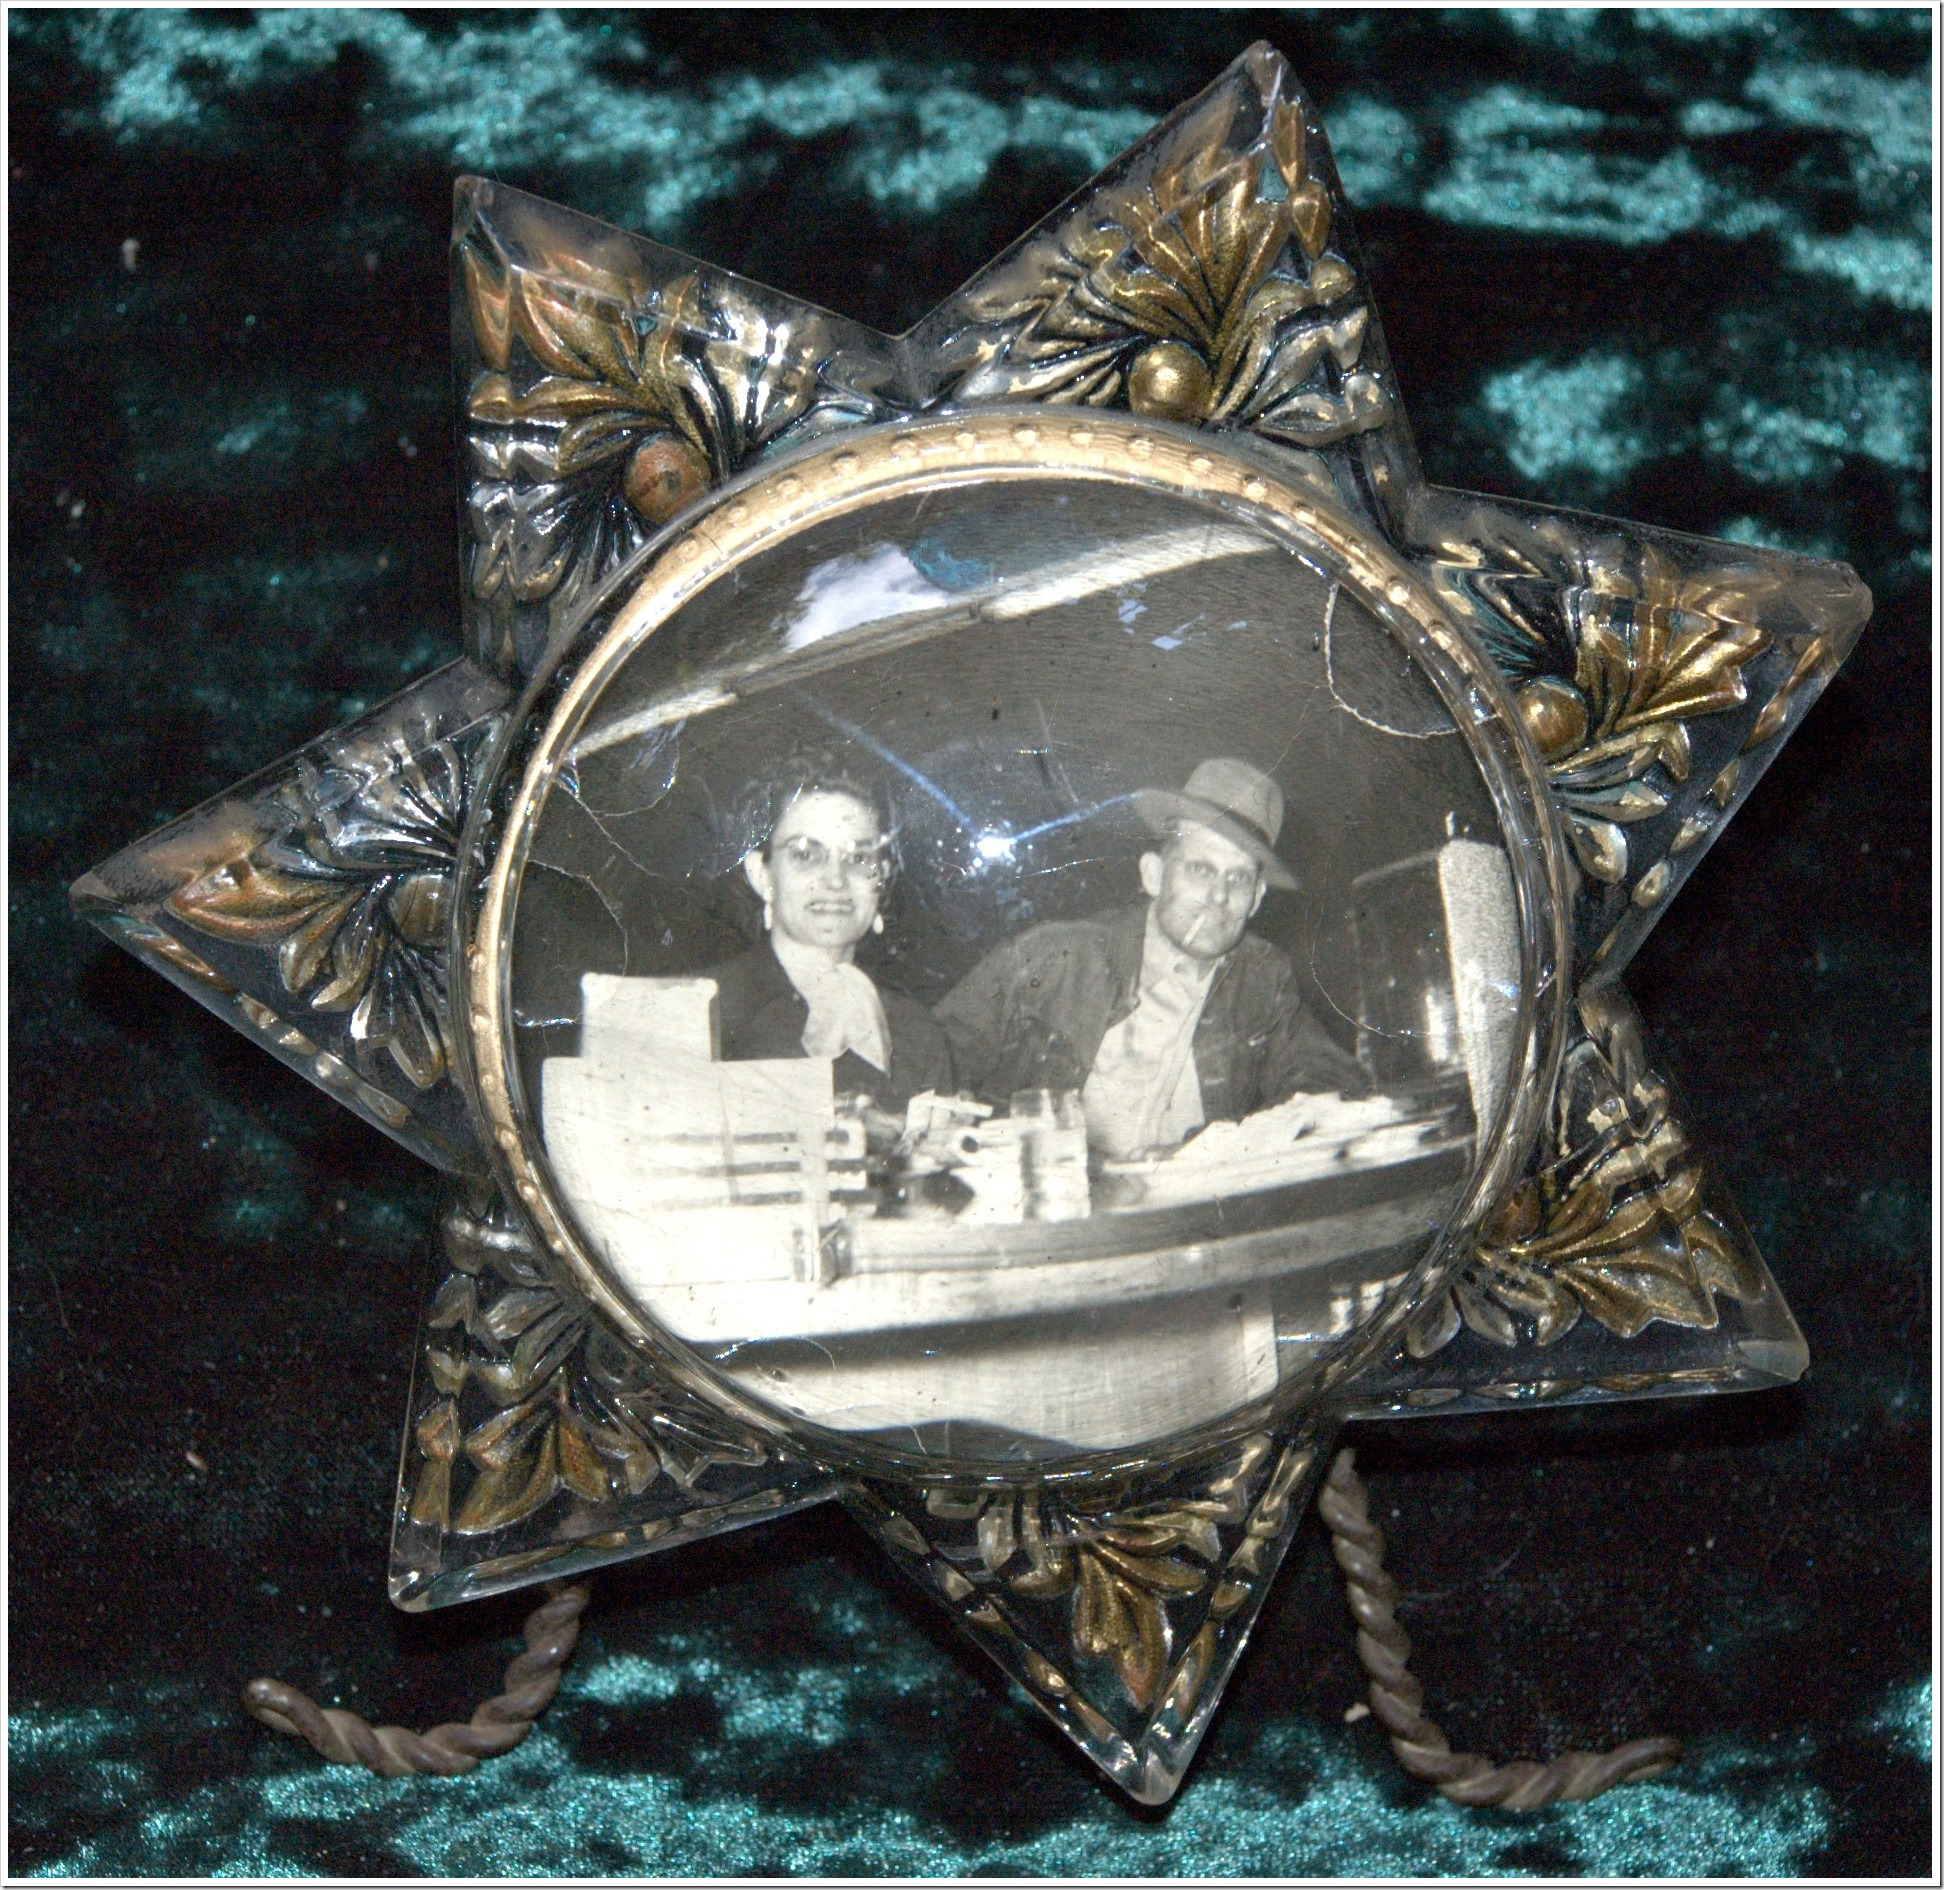 THIS IS THE STAR PICTURE FRAME LEAD PHOTO TO PUBLISH MOMMA AND DADDY 1